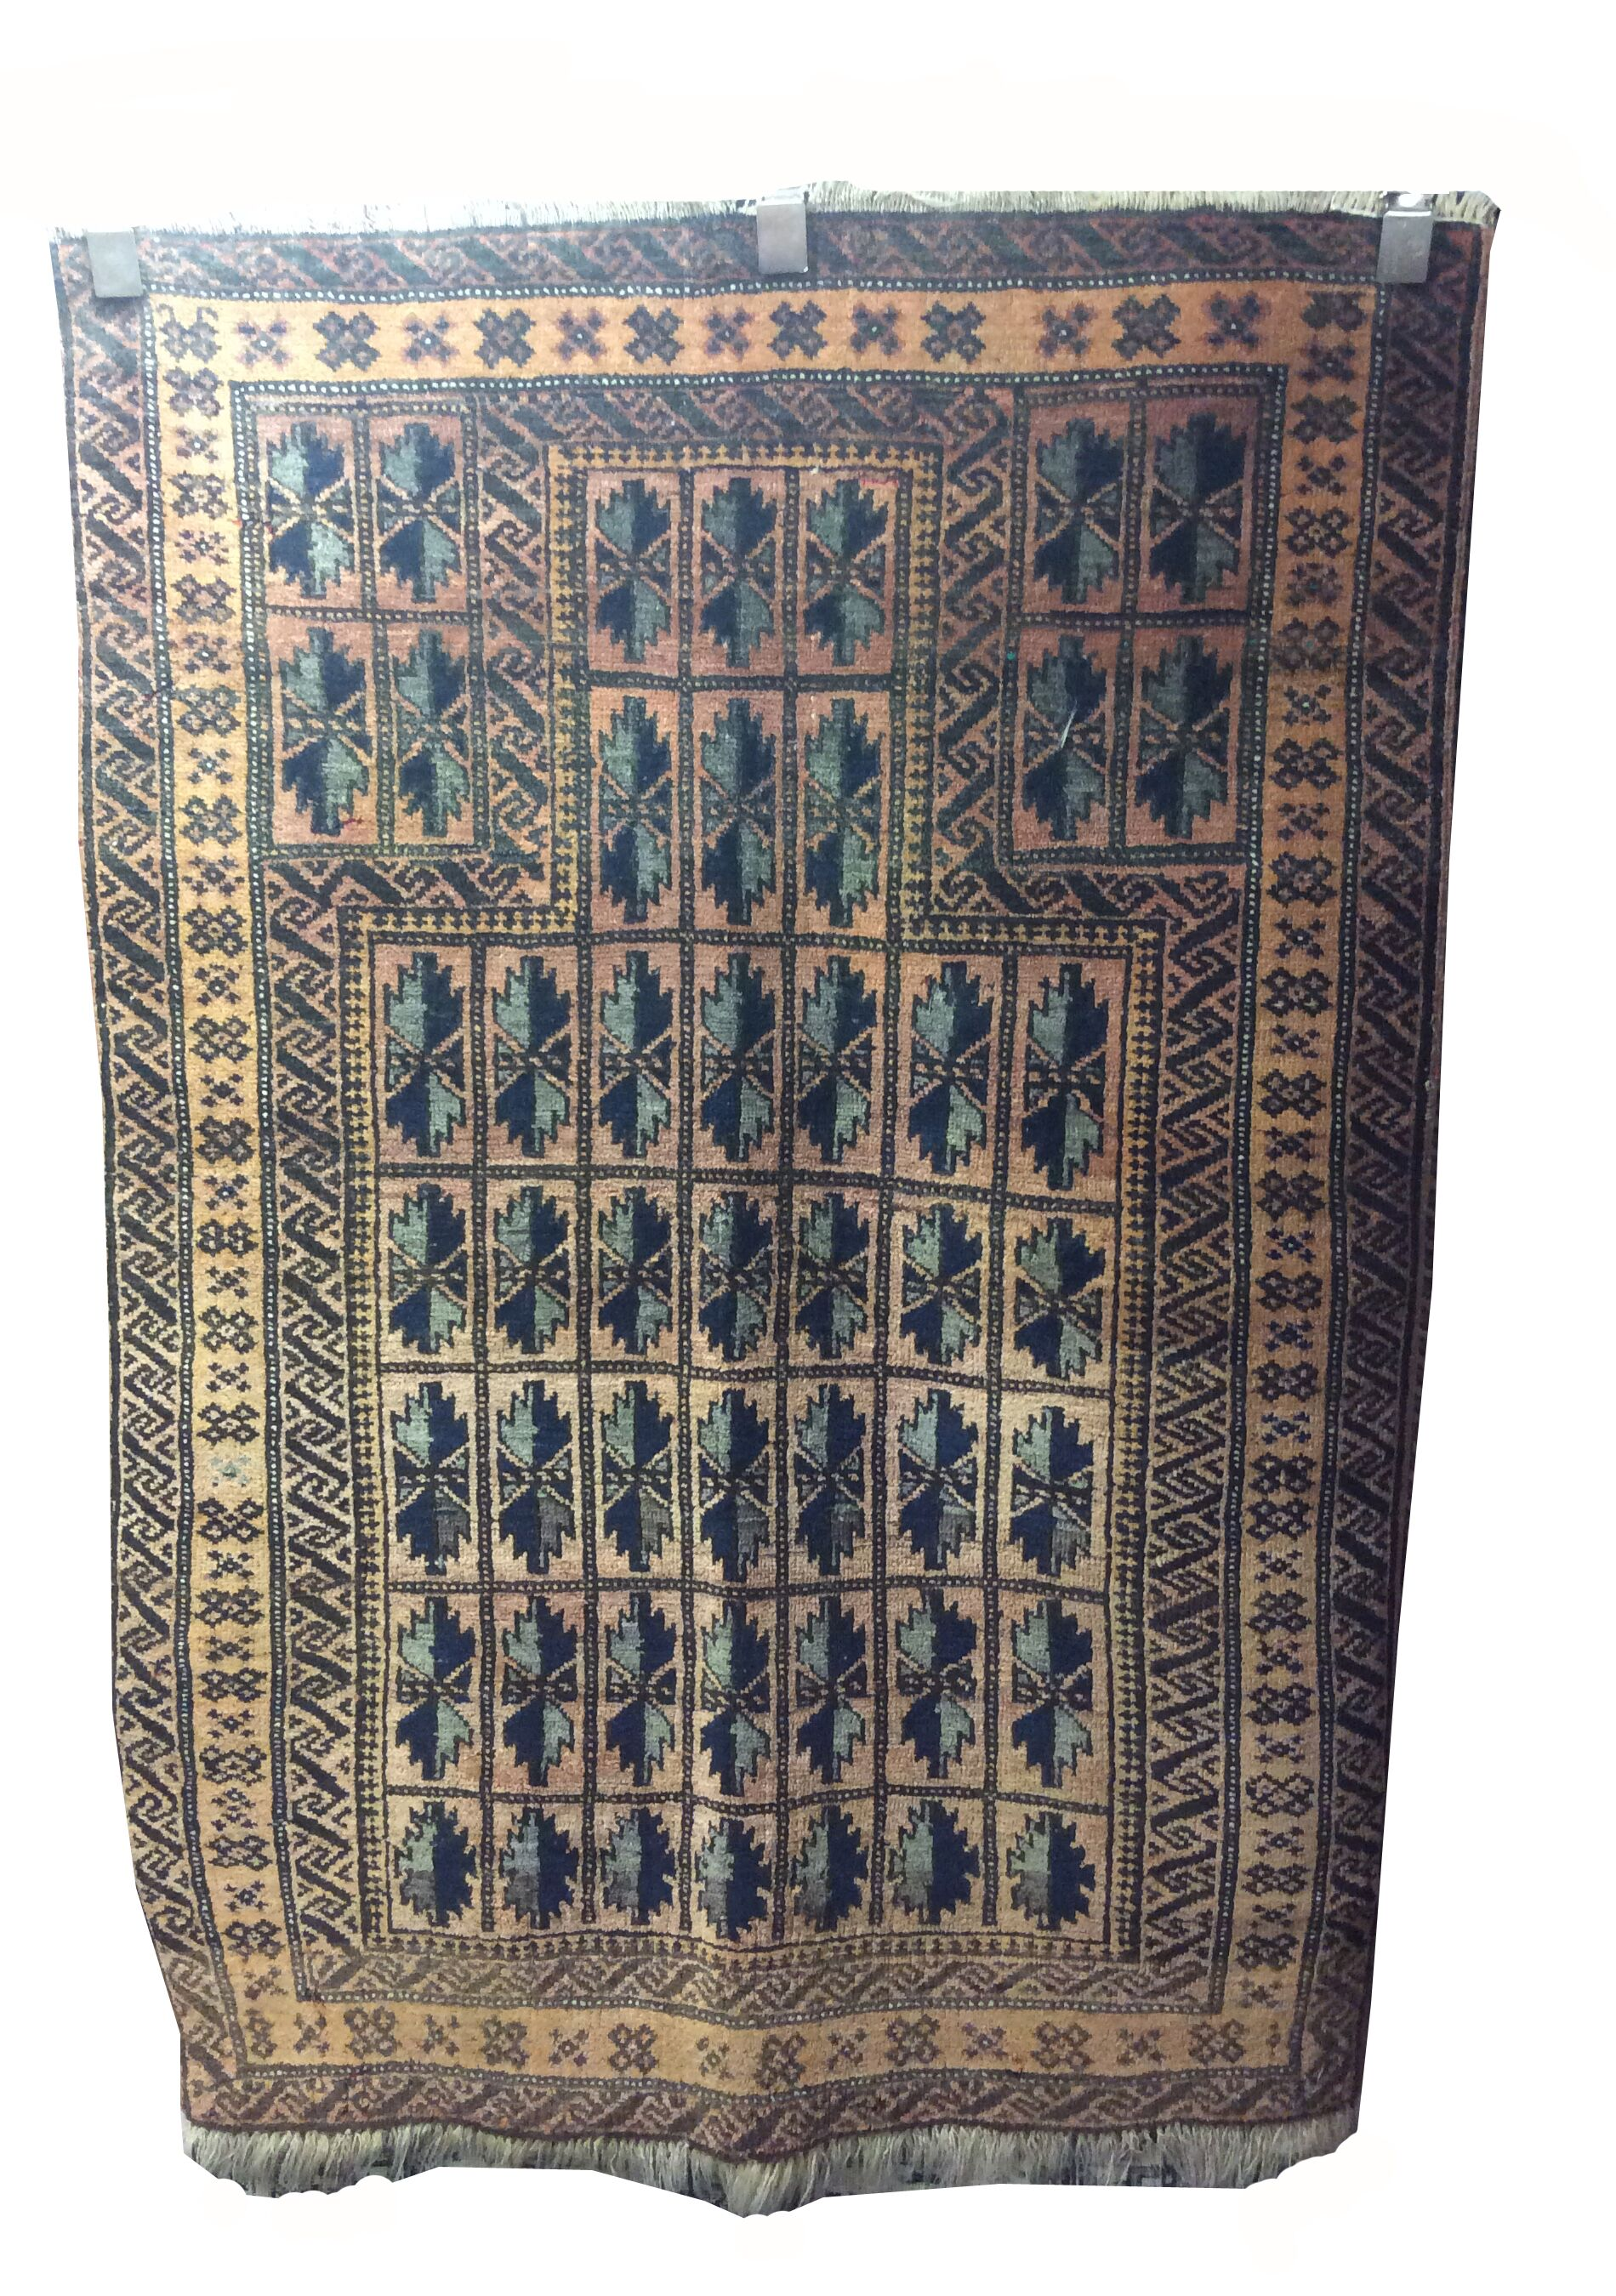 One-of-a-Kind Wiedemann Afghan Tribal Hand-Knotted Wool Brown/Blue Rug